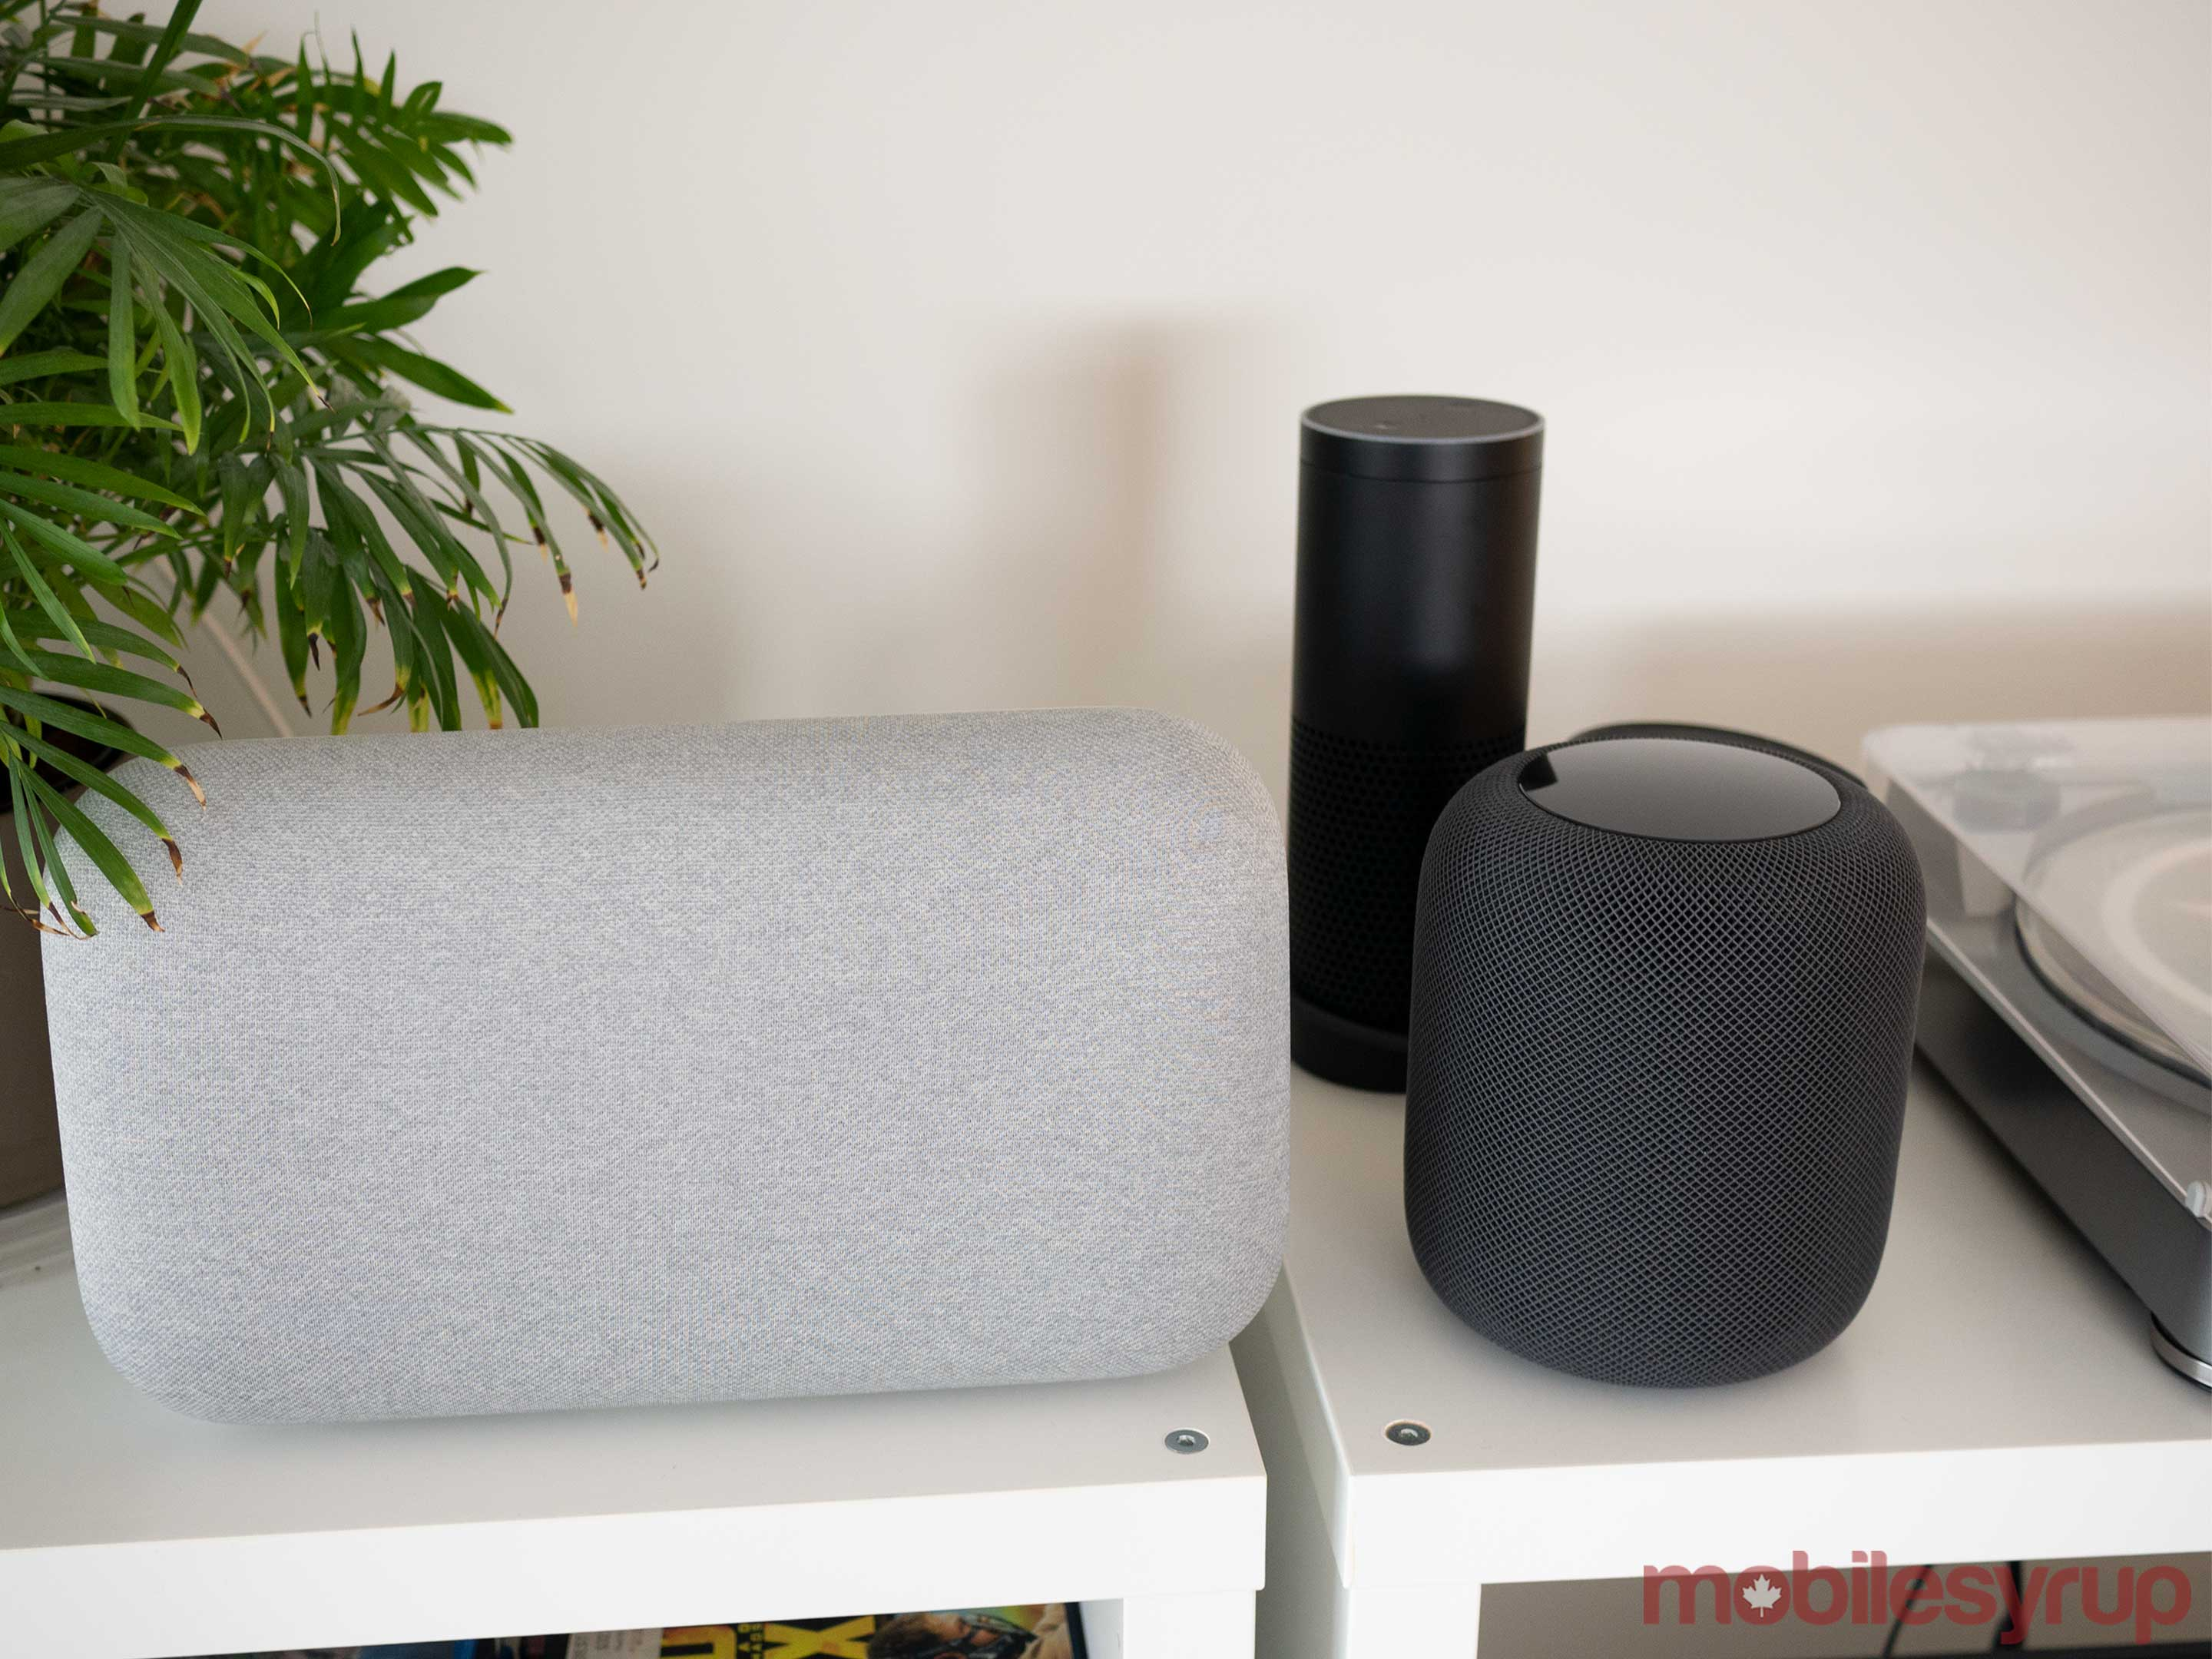 HomePod vs Amazon Echo vs Google Home Max